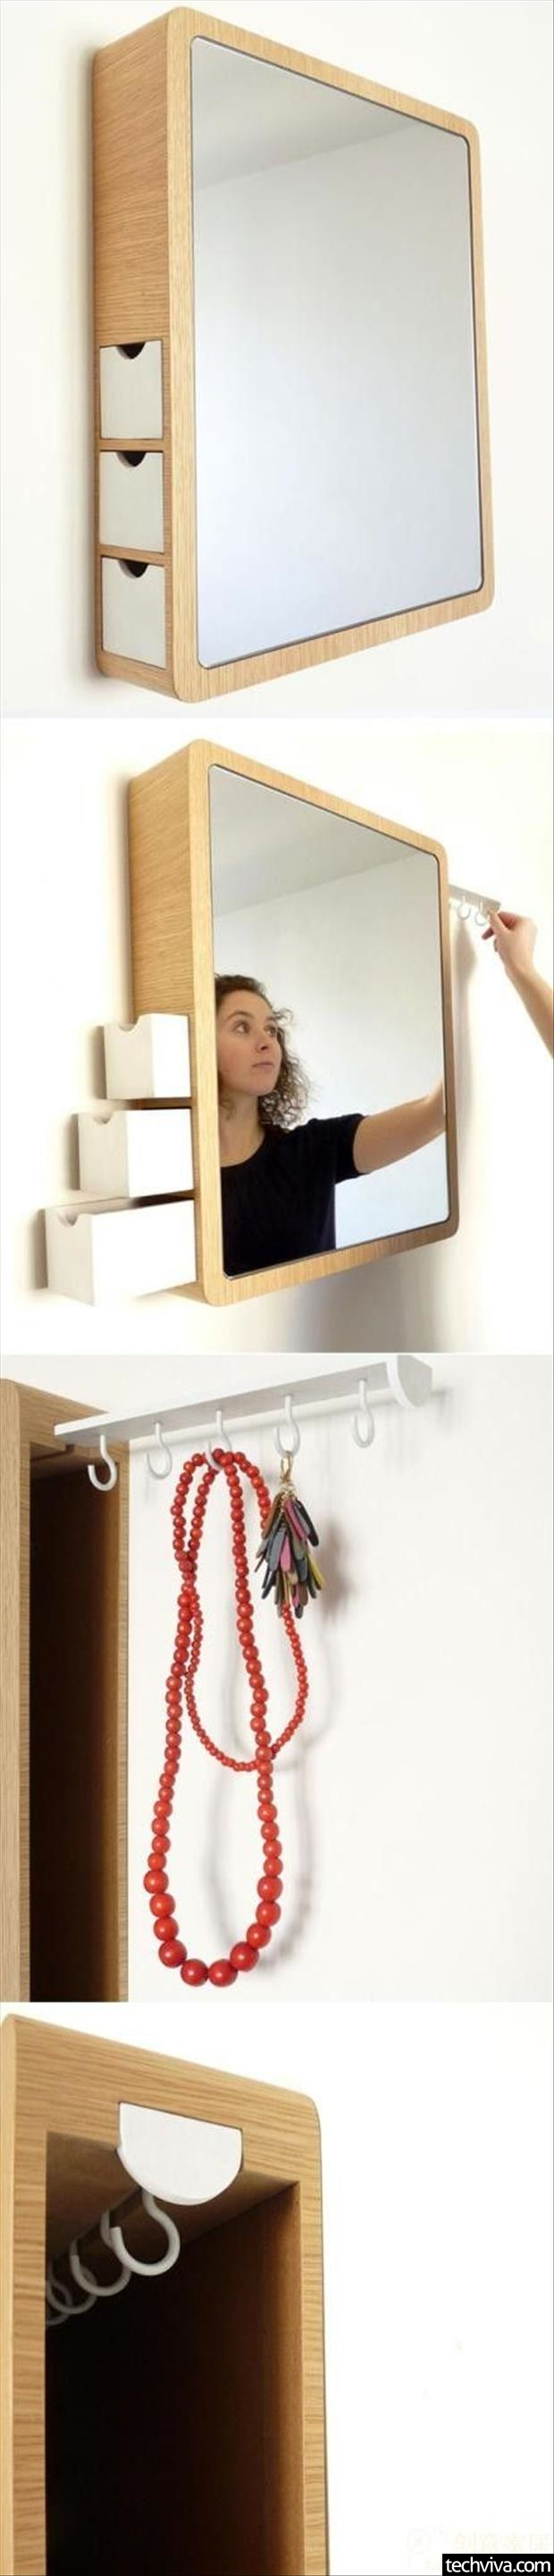 bathroom-mirror-concepts